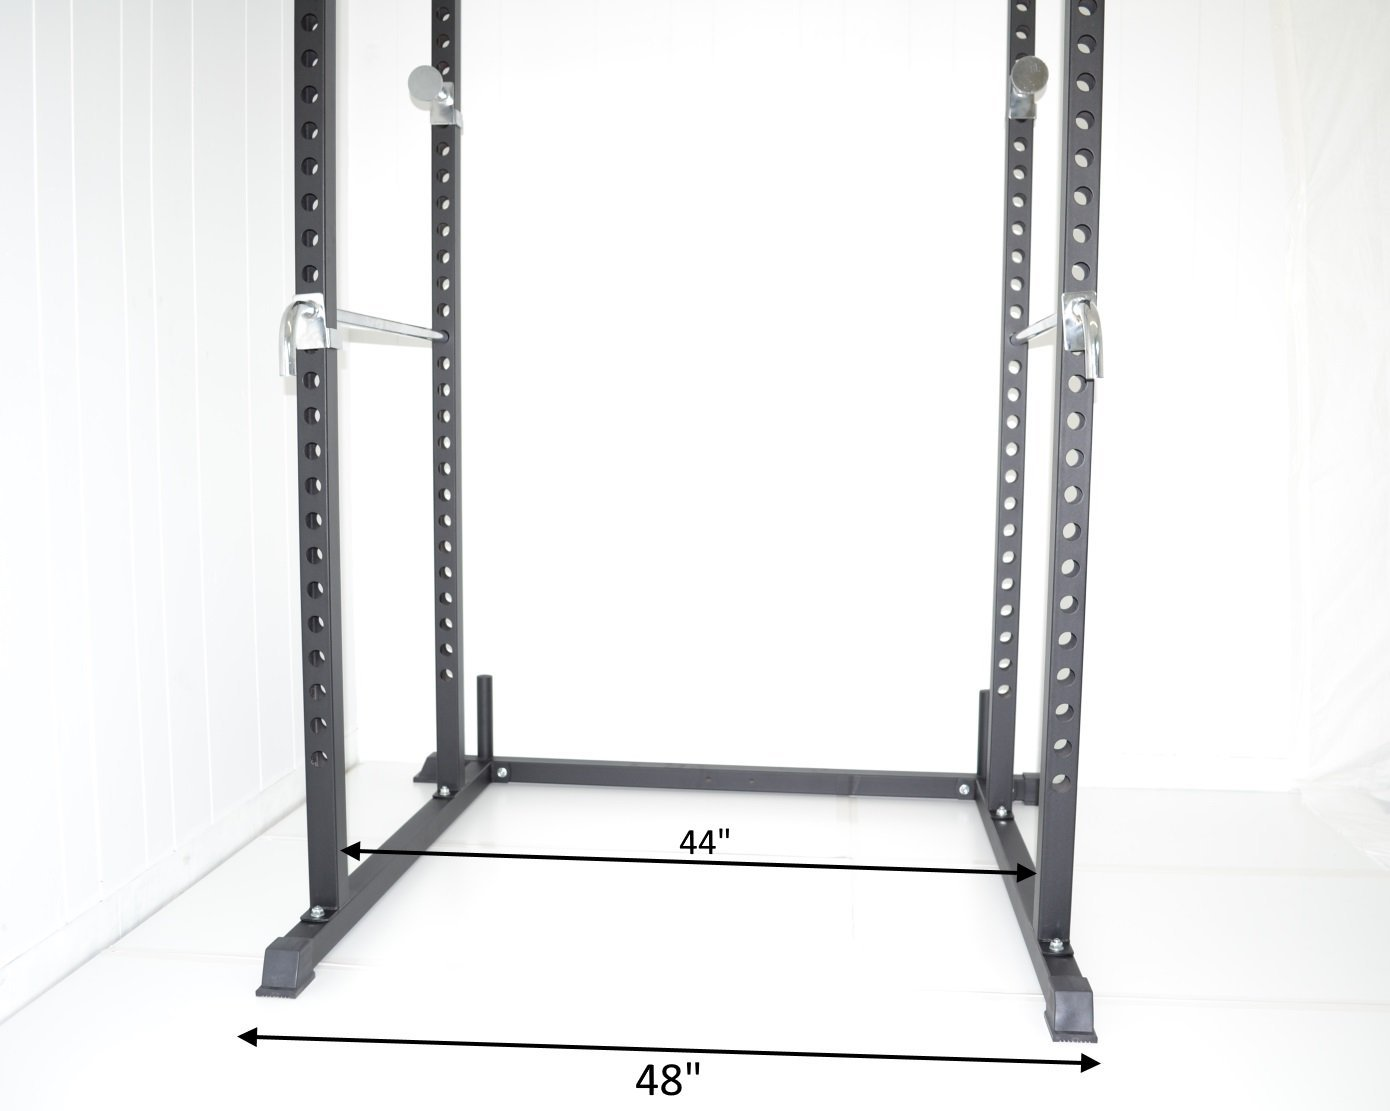 walk-in design of alas power Rack